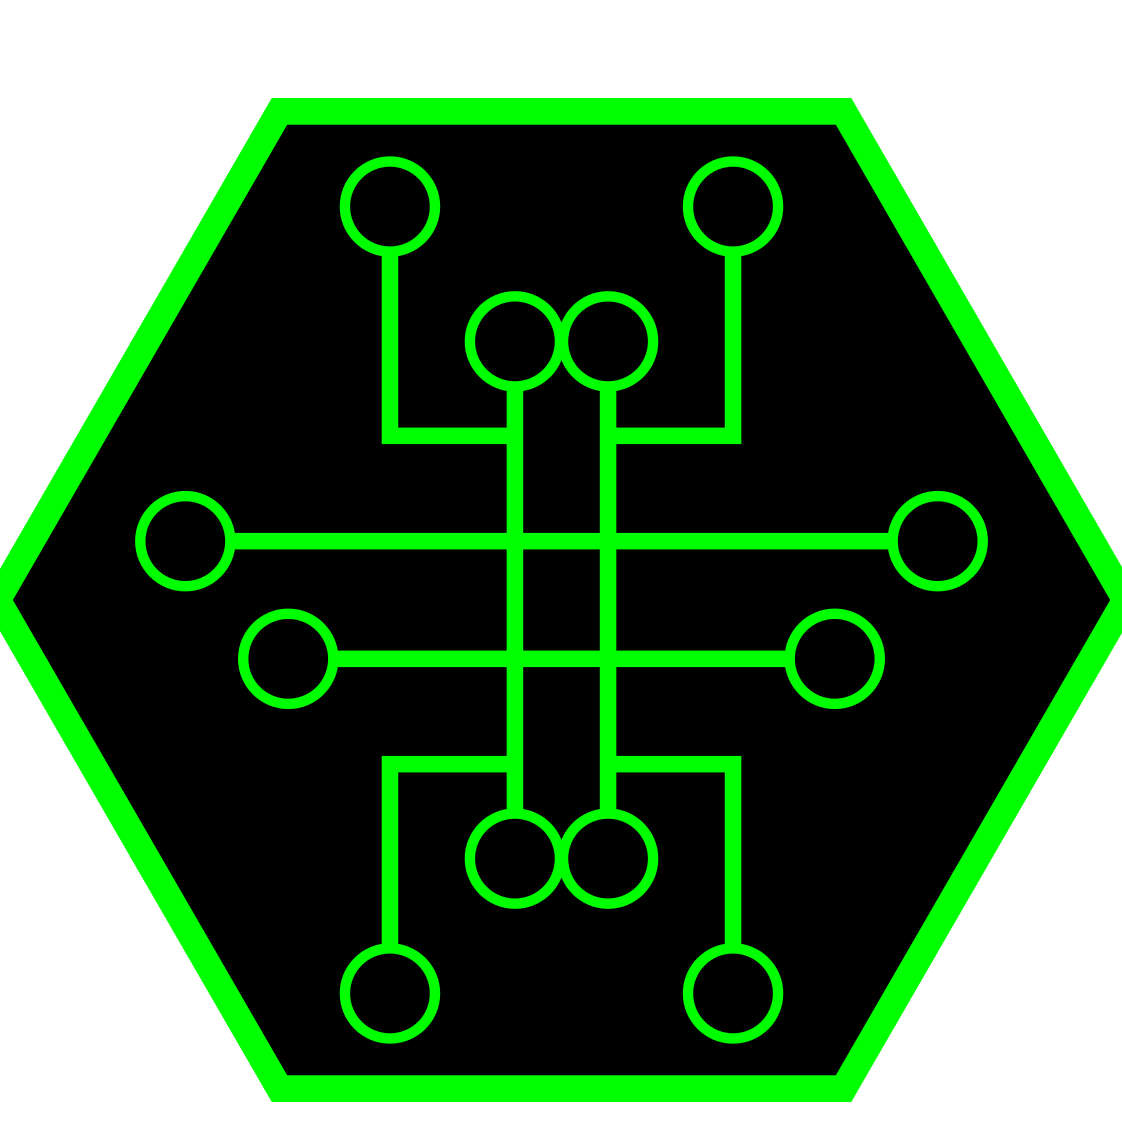 Hackers.town Radio